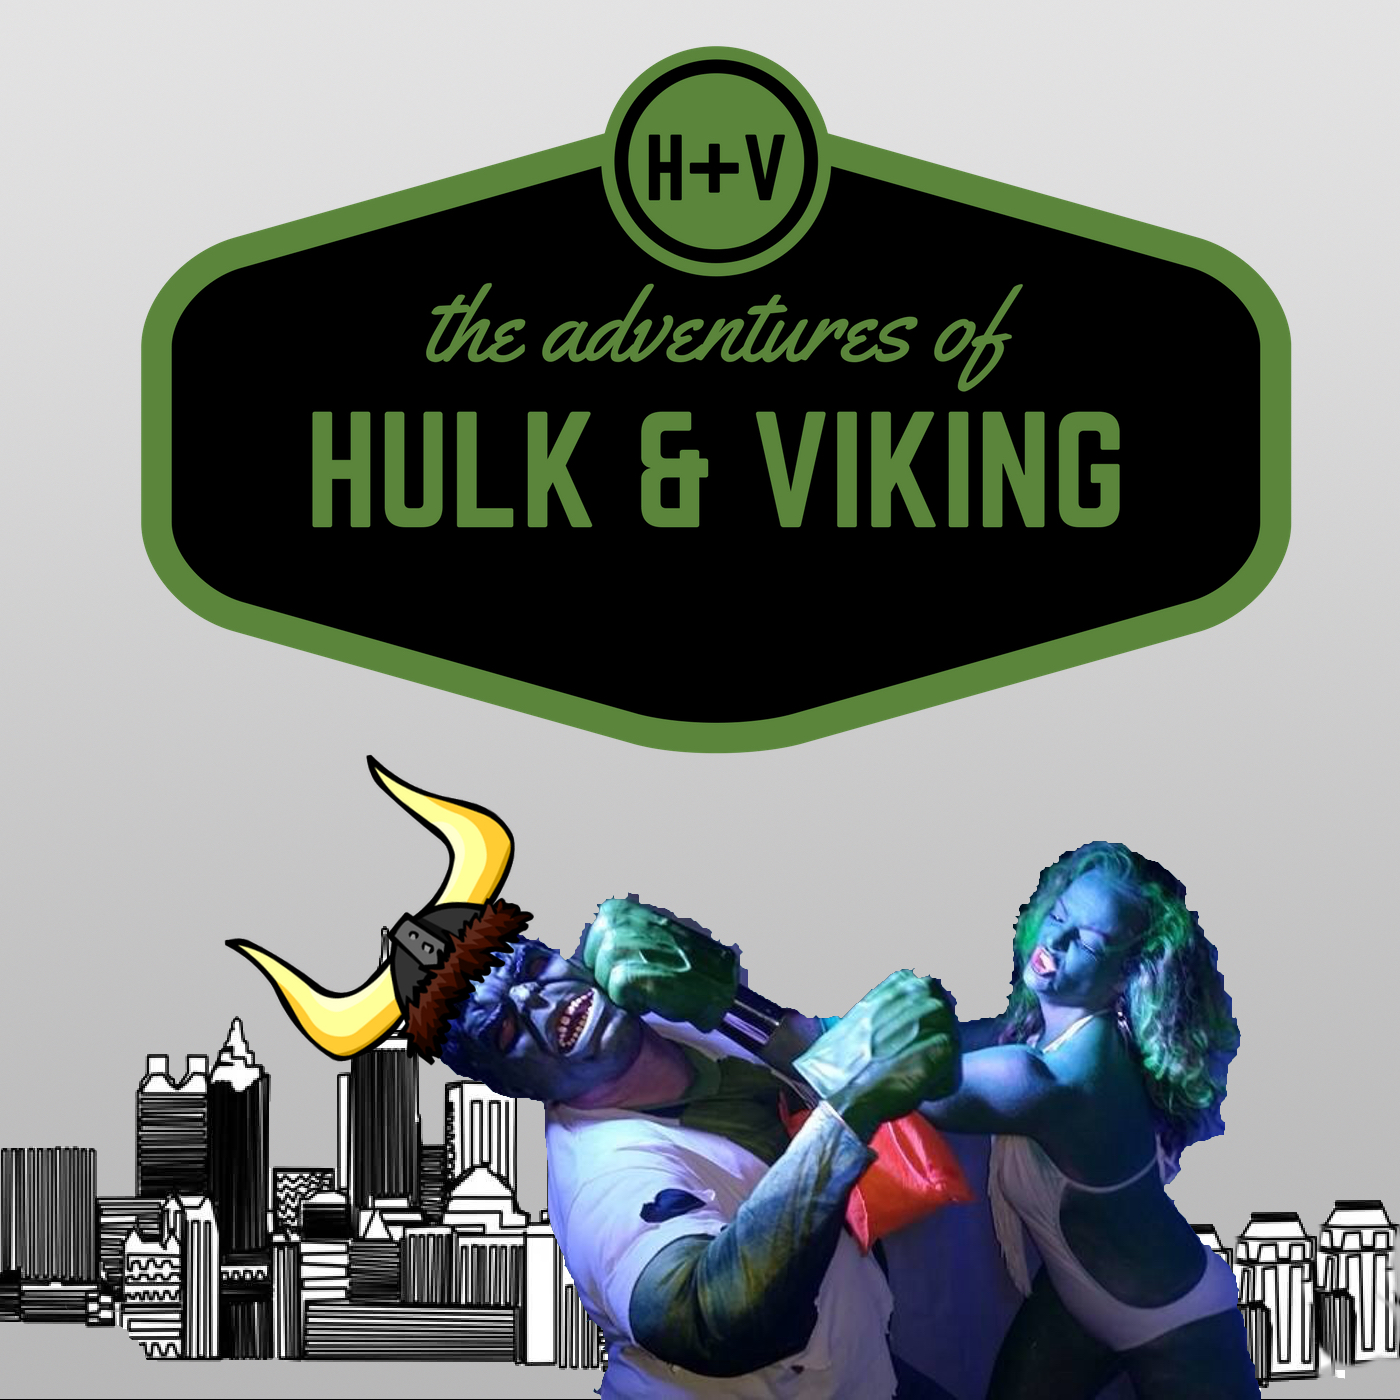 Powerlifting attempts and kilo pound conversion chart team lis smash adventures of hulk viking podcast episode 1 nvjuhfo Images